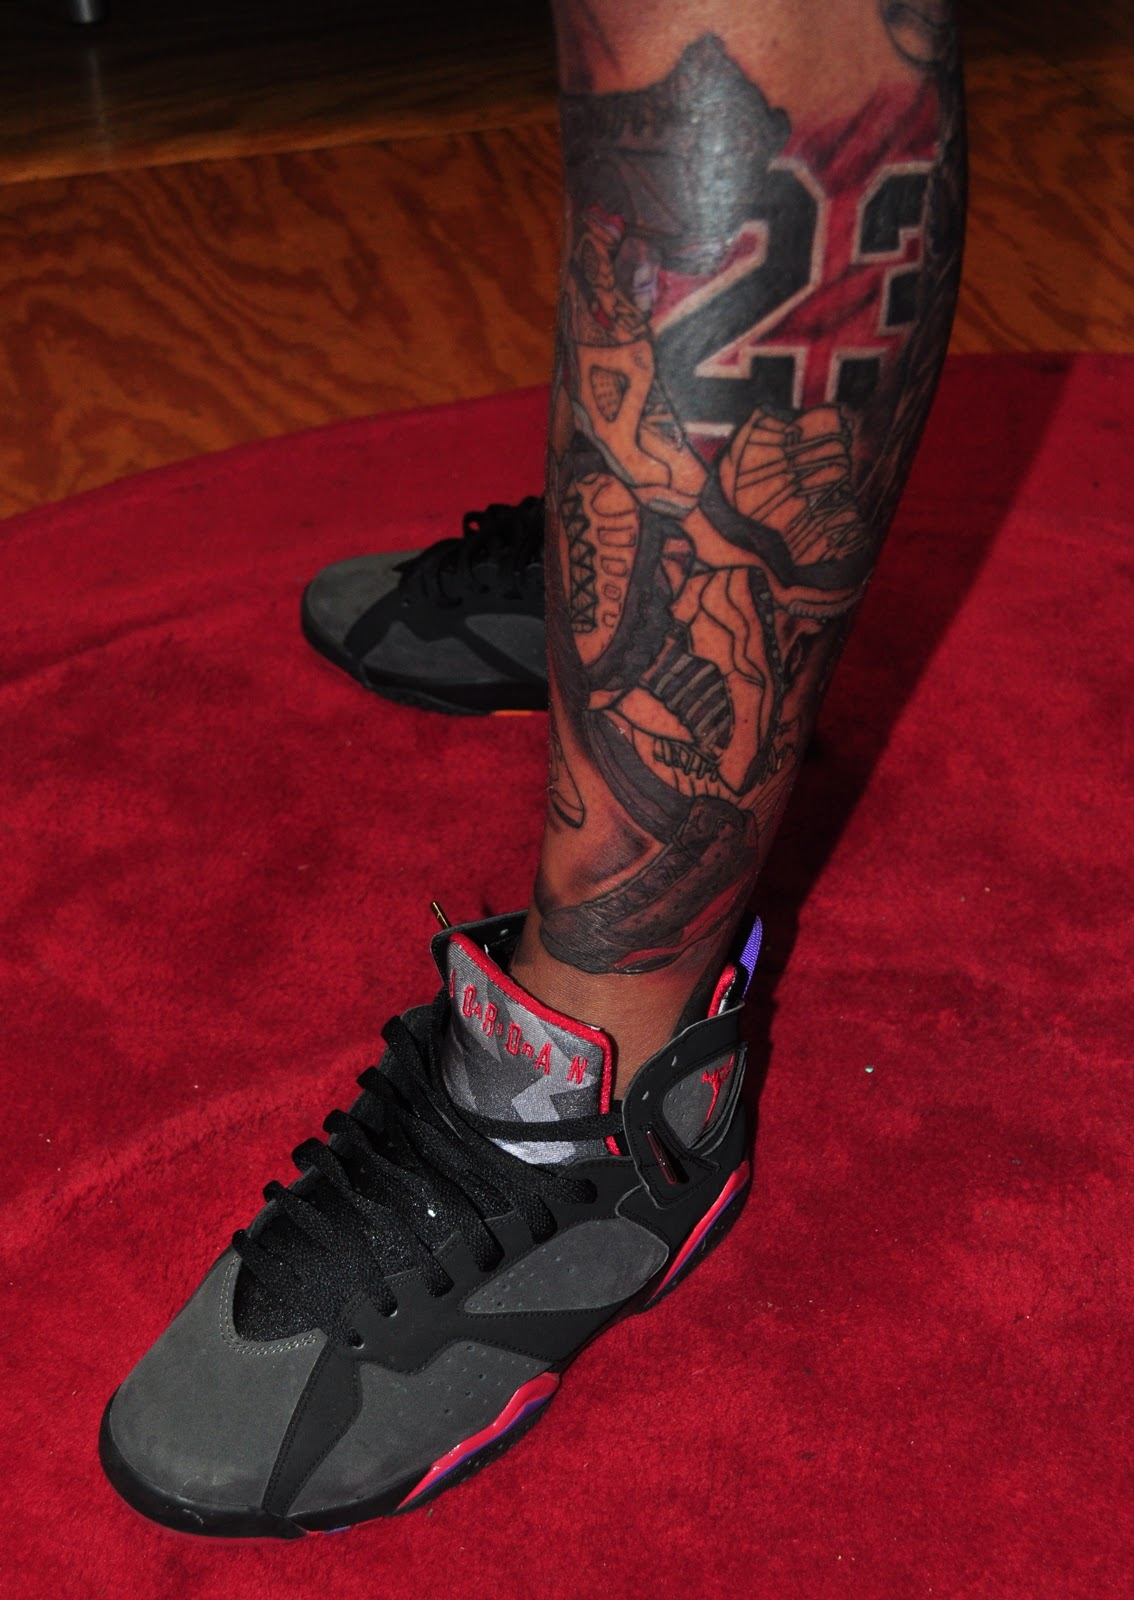 vintage jordan shoes with 23 number tattoo 762790